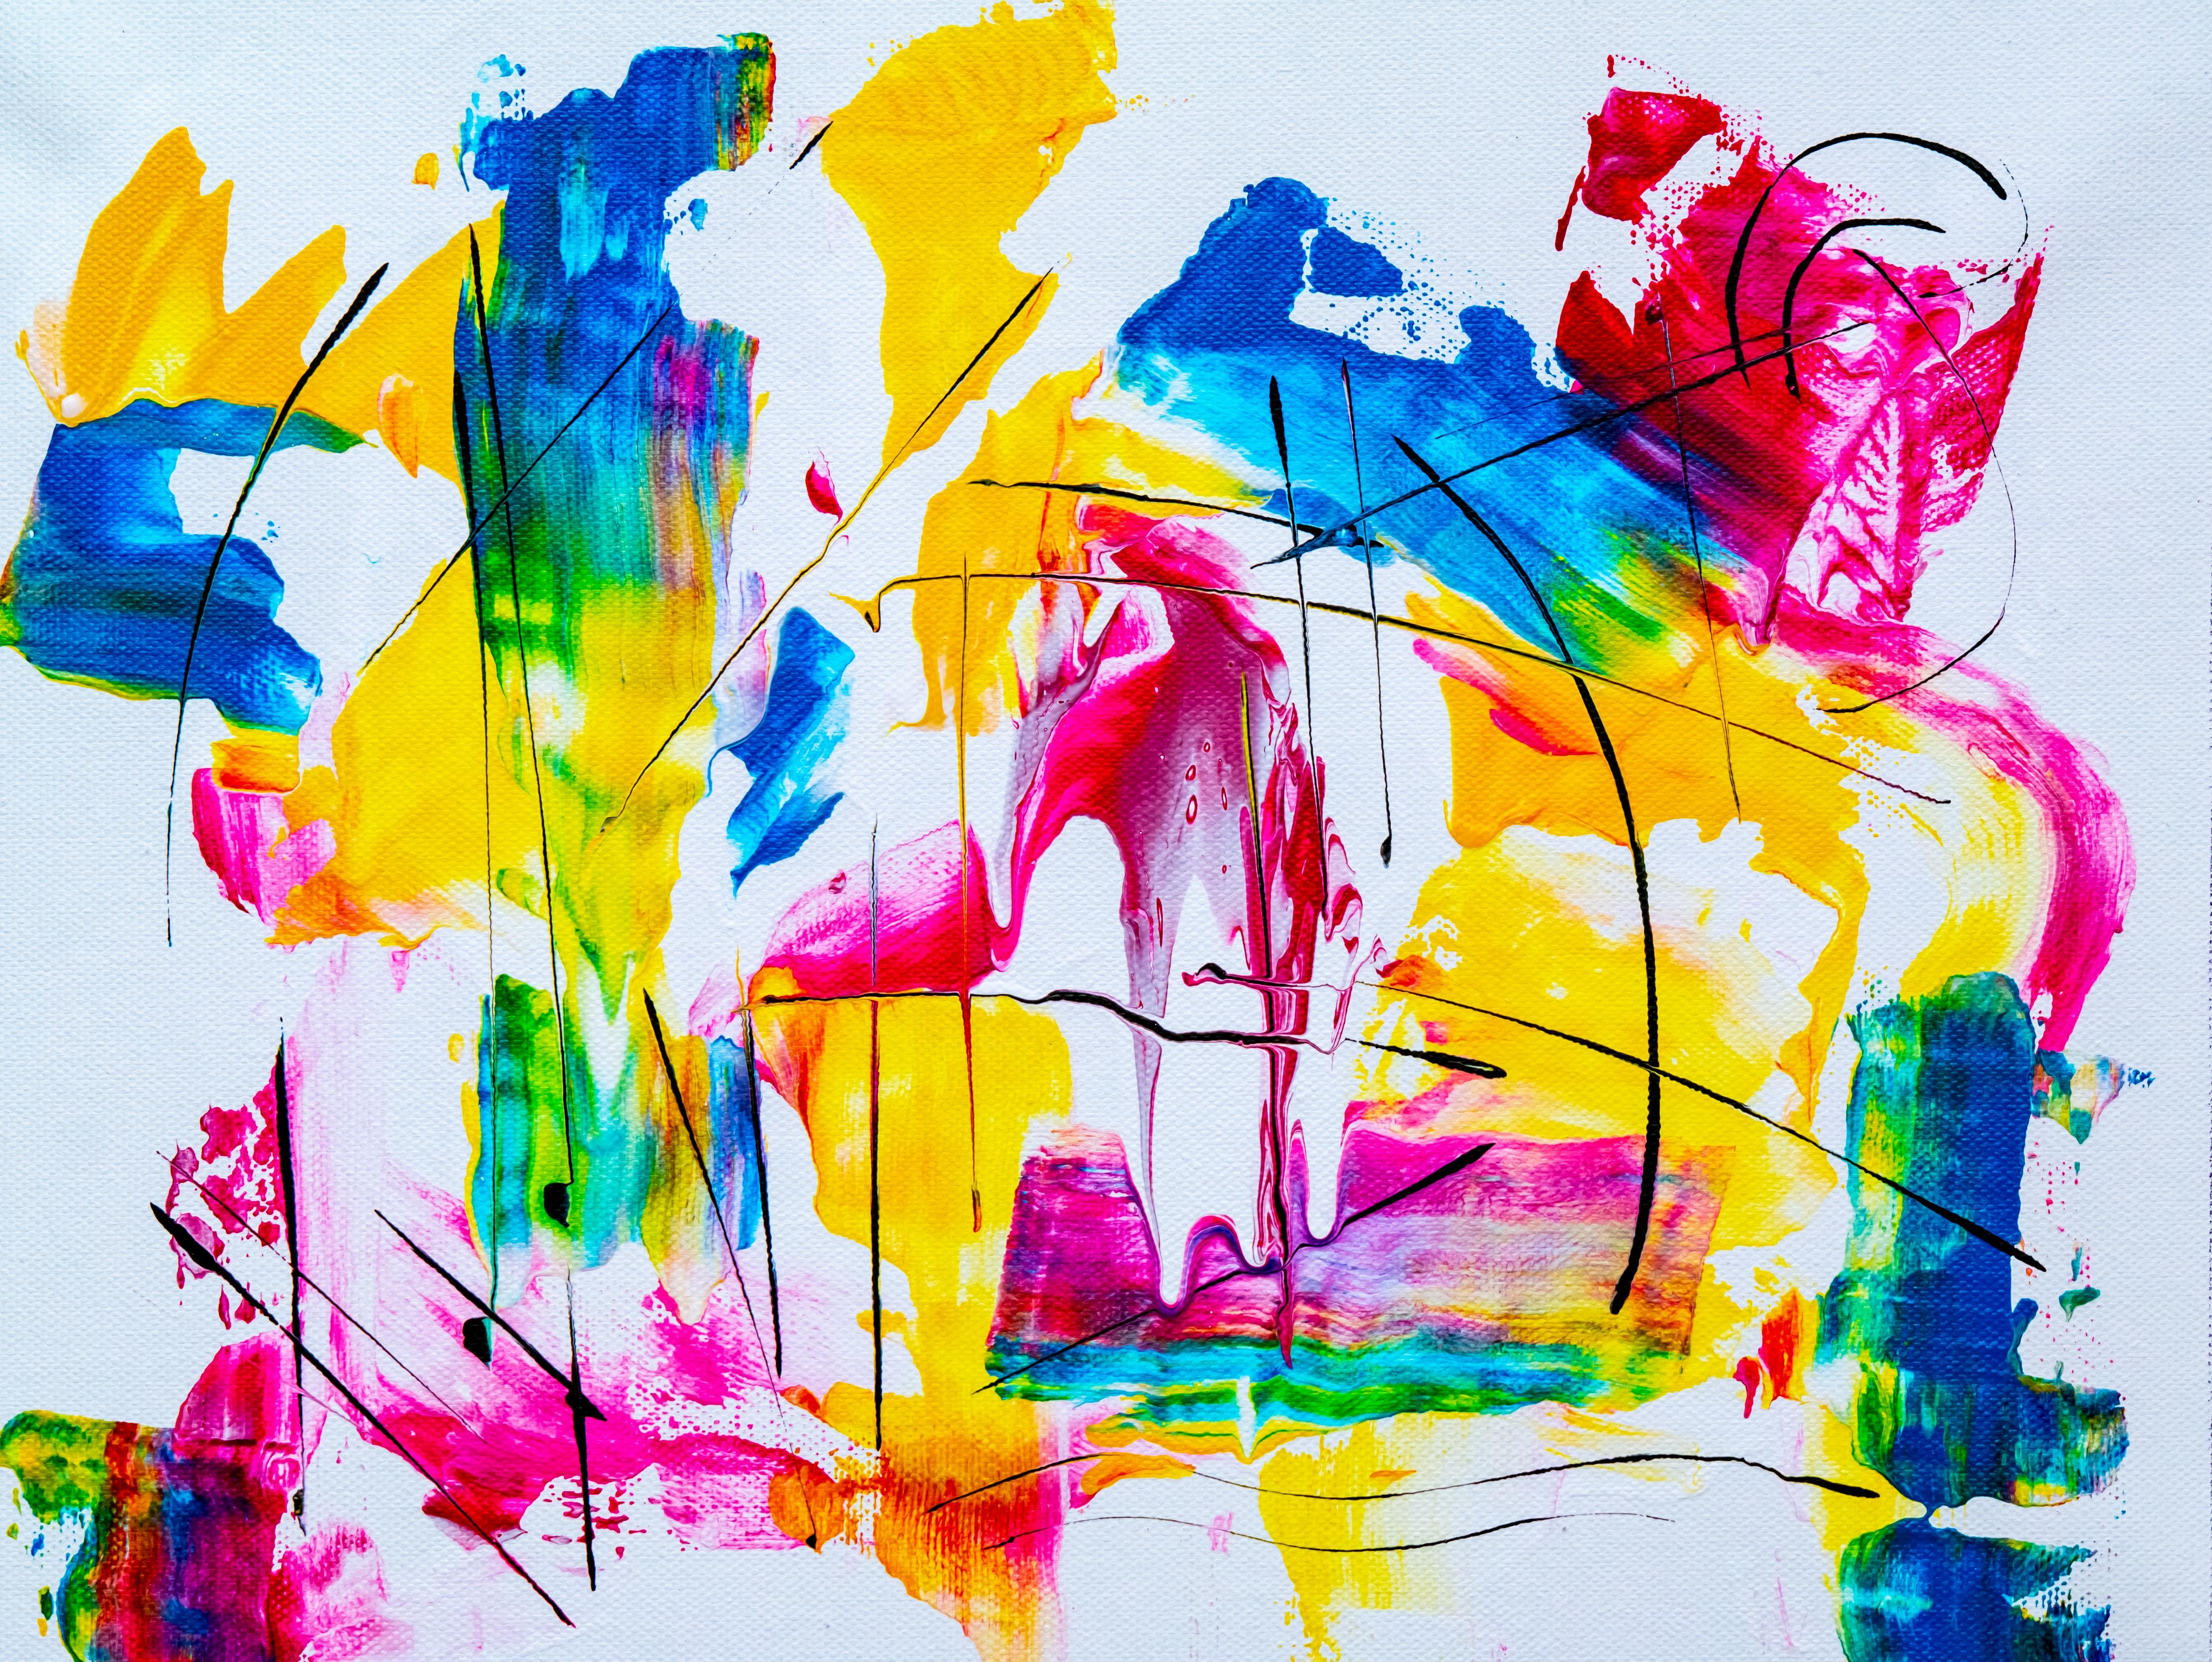 Image of a brightly coloured art piece; blue, yellow, pink, and green brushstrokes and shapes.